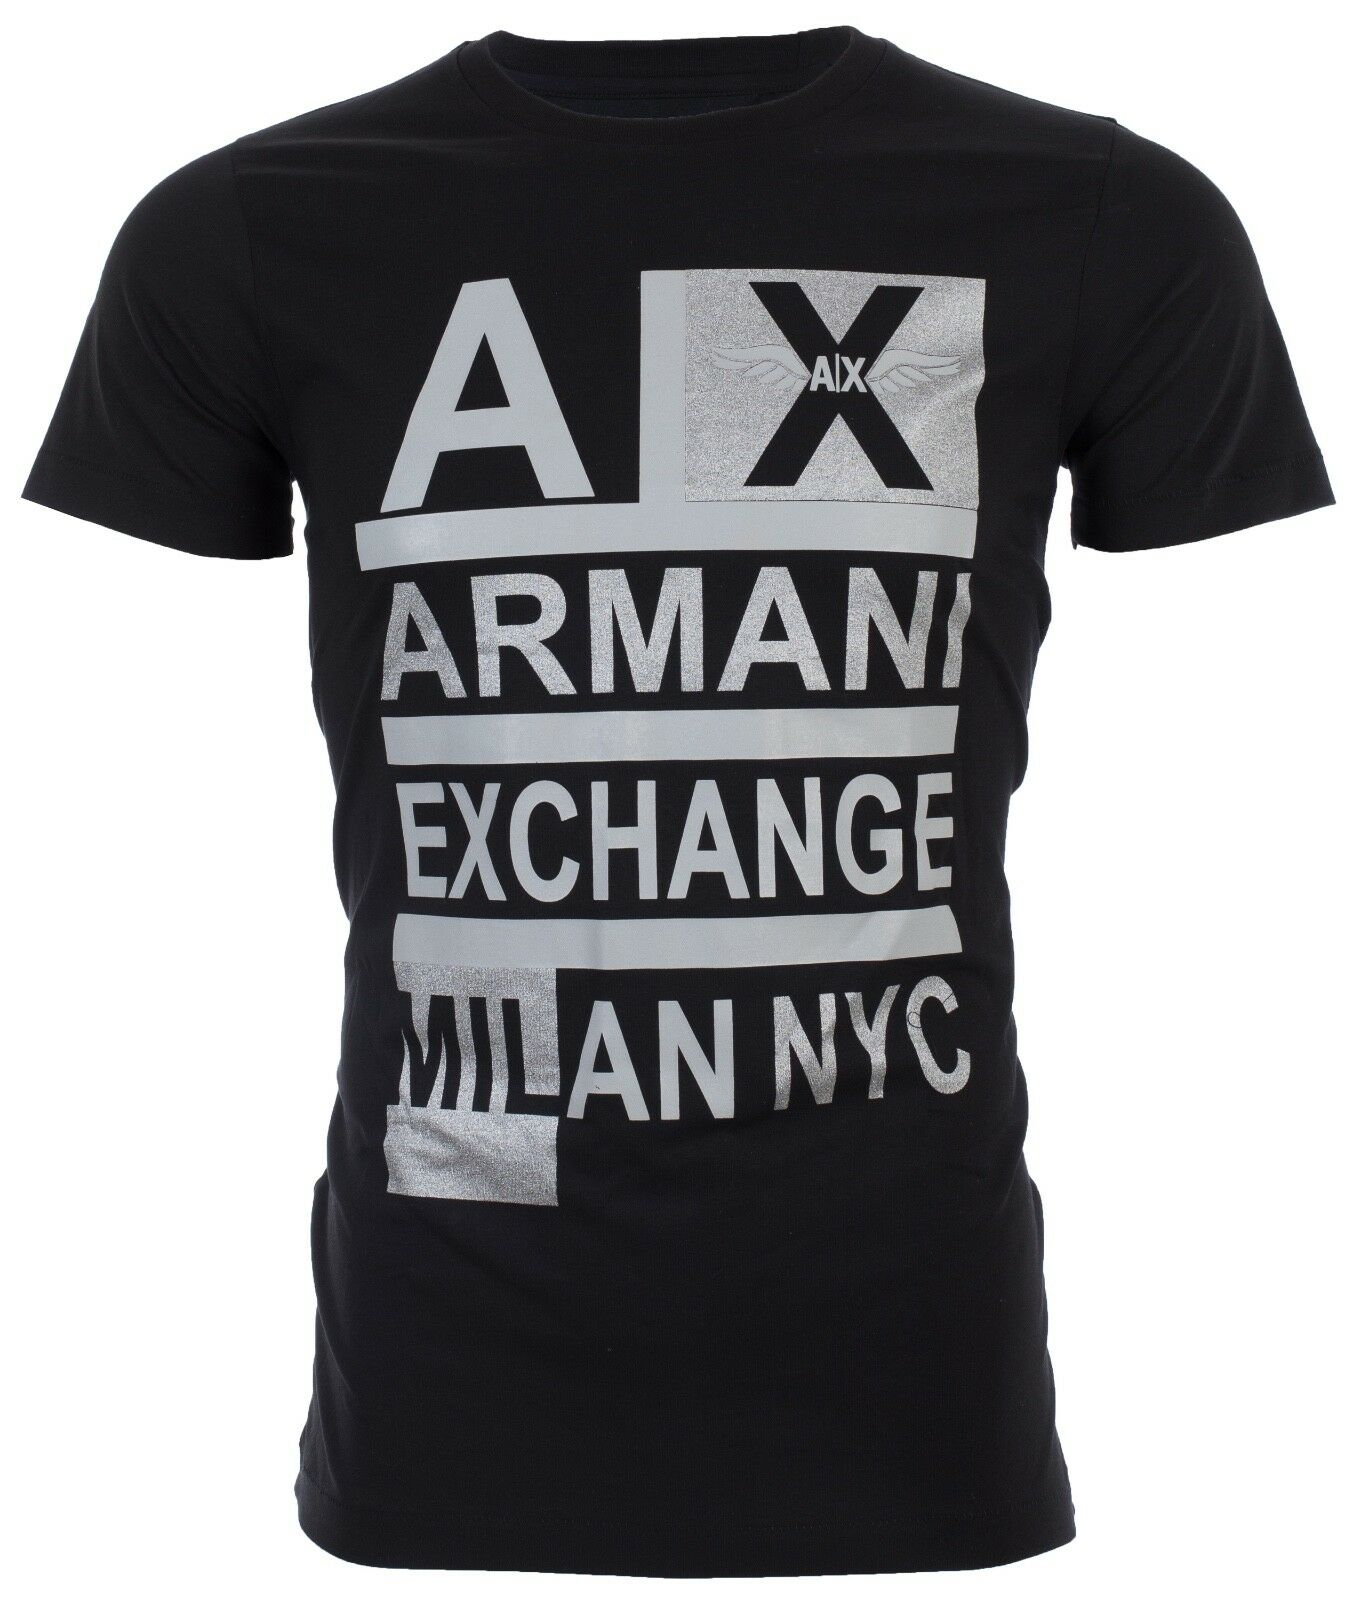 Mens Armani Exchange Milan NYC Stacked Short Sleeve Black Slim fit Haute Couture Designer T-Shirt T shirt